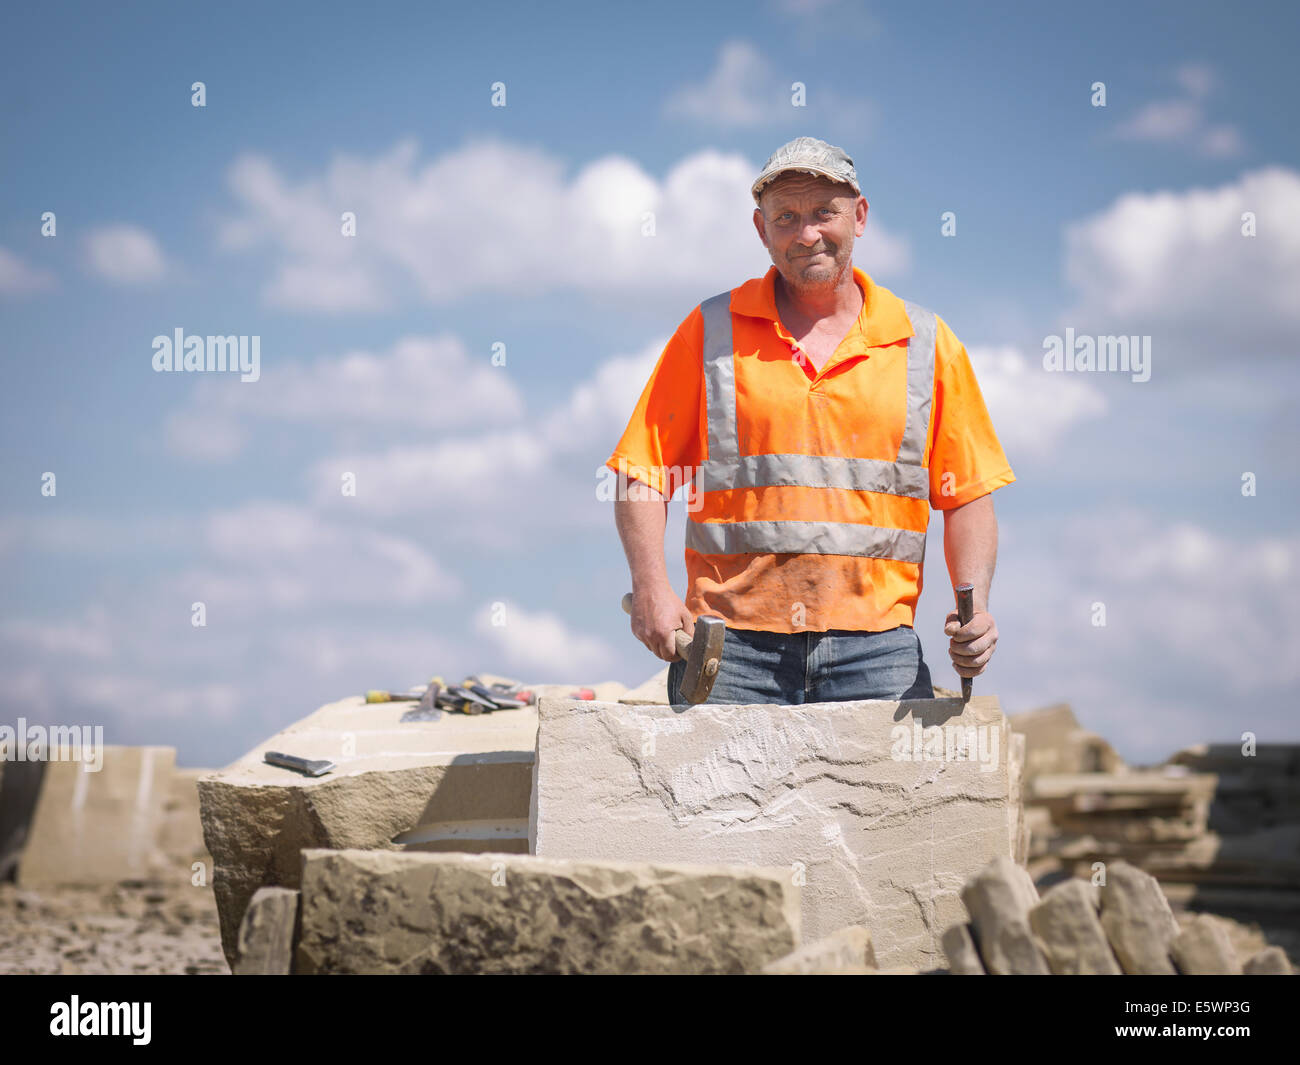 Quarry worker with sandstone in Yorkshire stone quarry, portrait - Stock Image